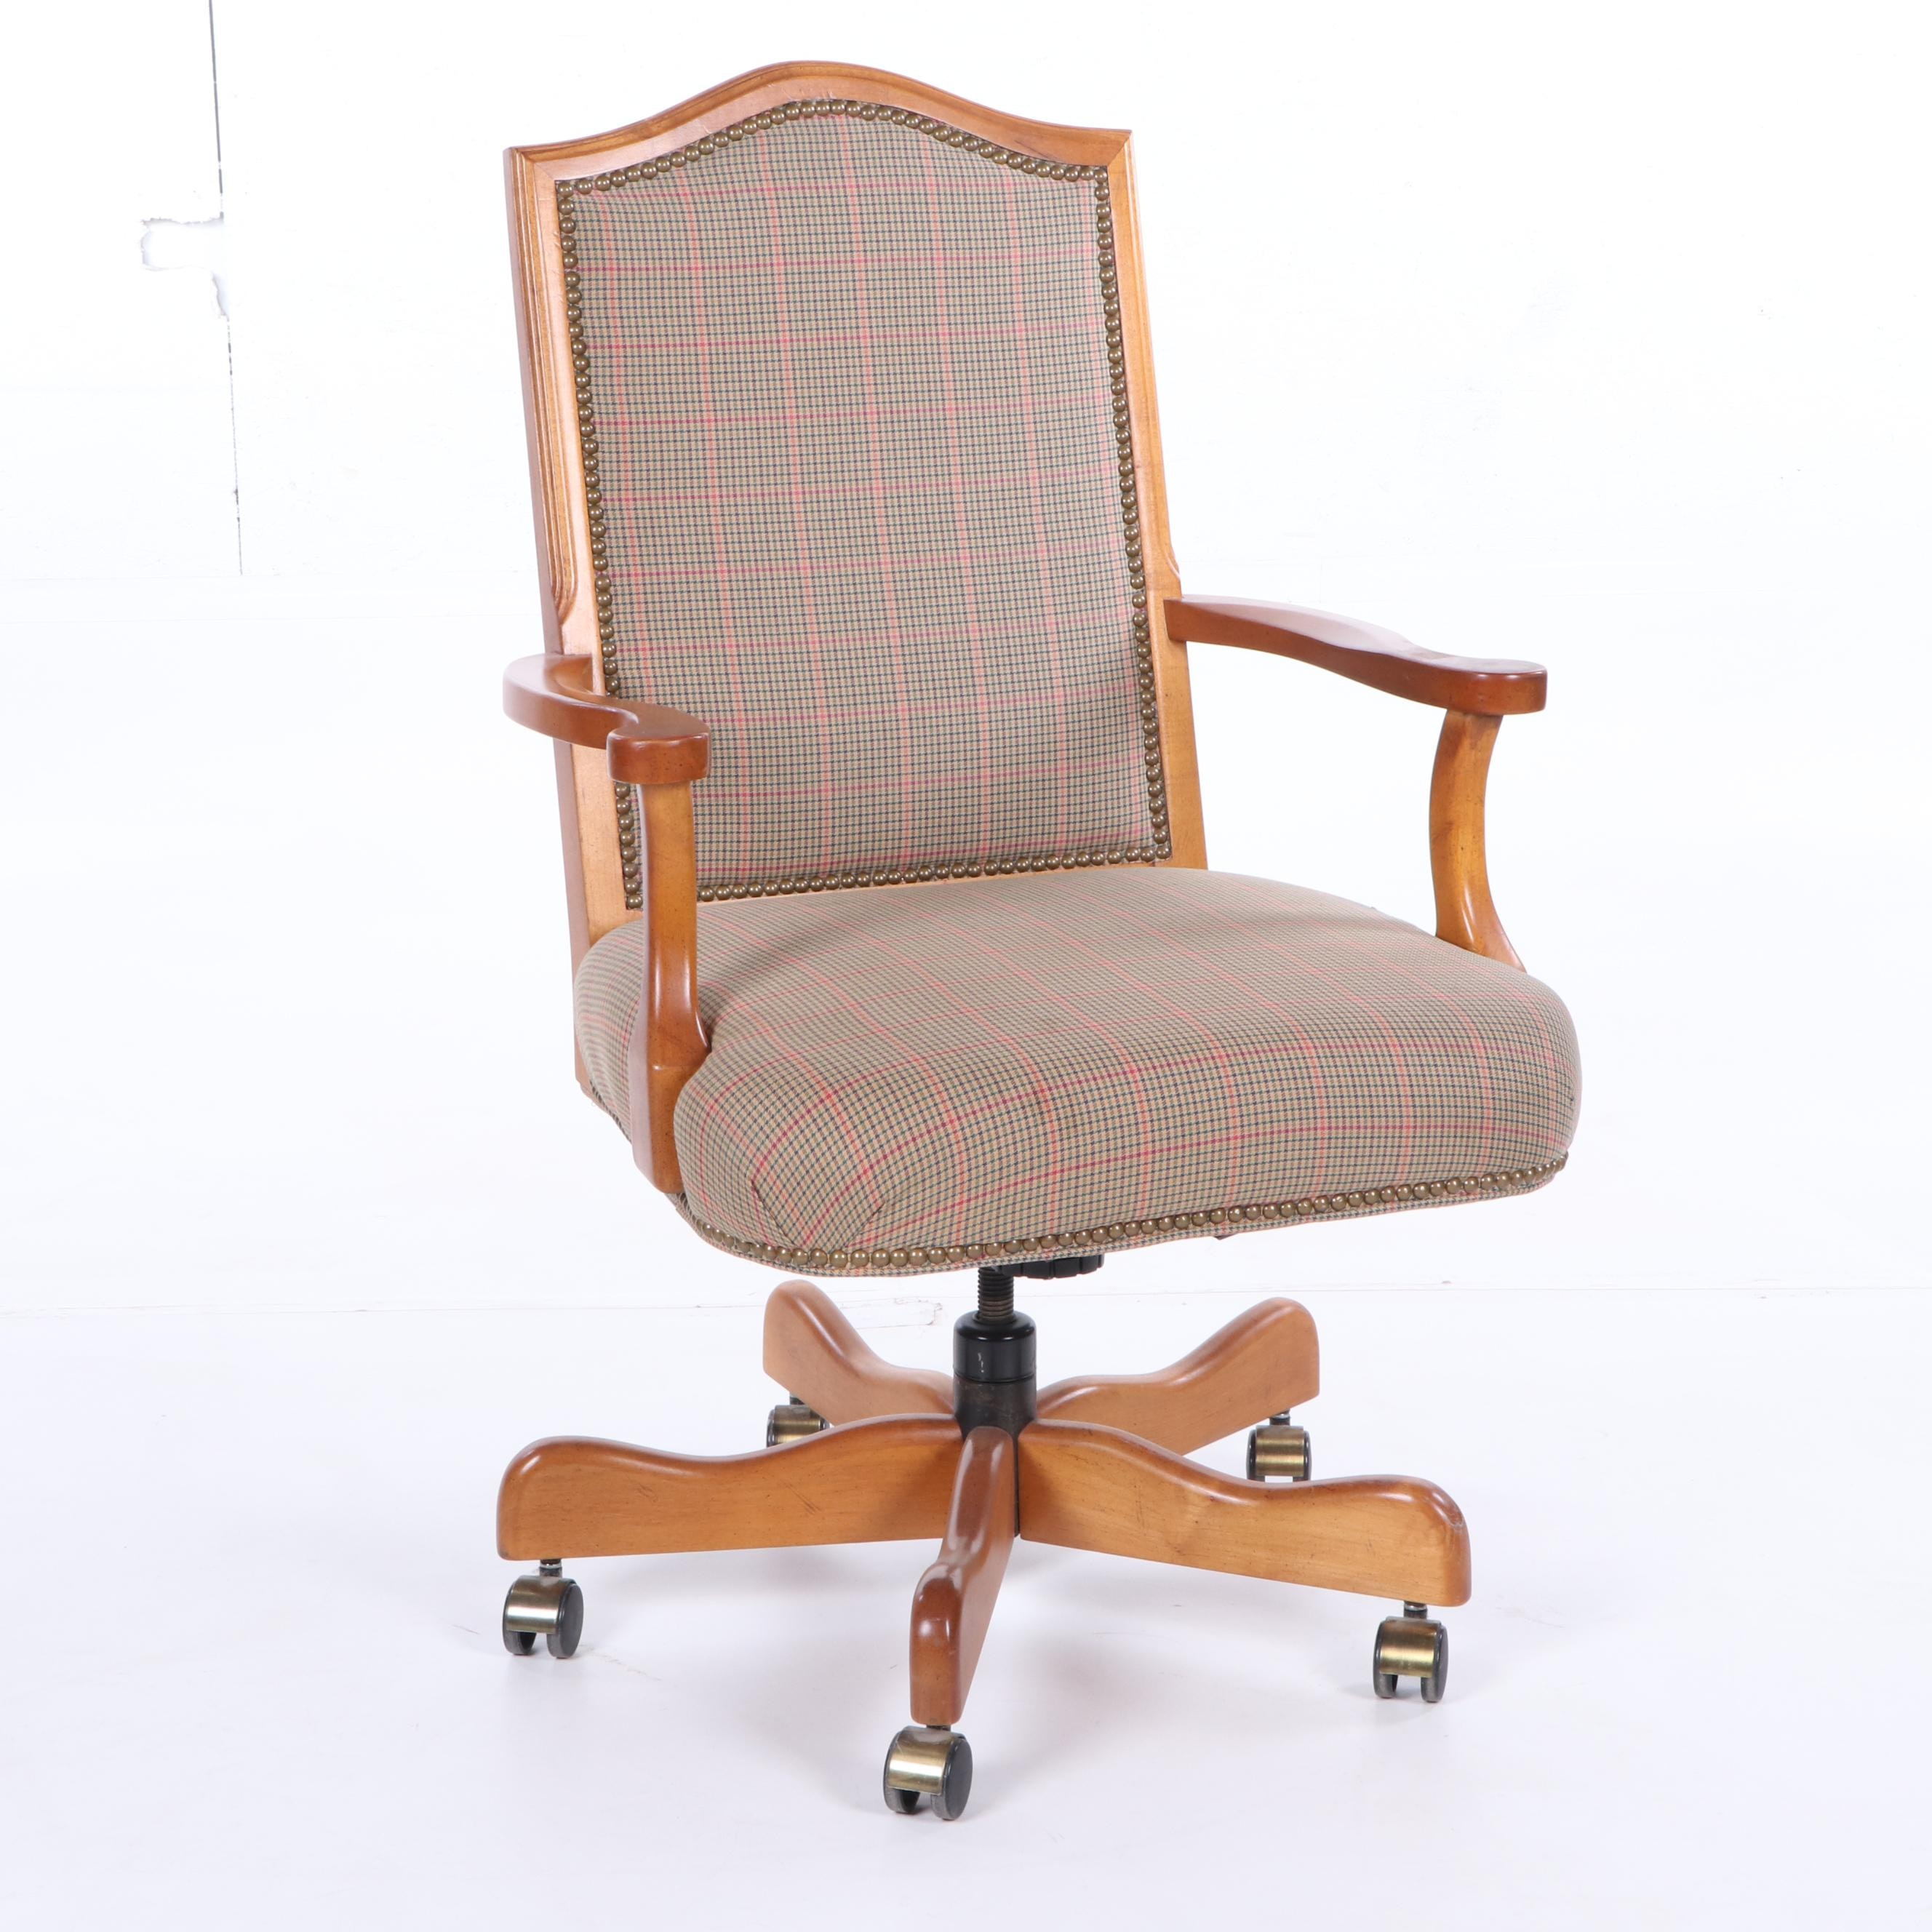 Upholstered Office Chair on Casters by Sam Moore Furniture for La-Z-Boy, 21st C.